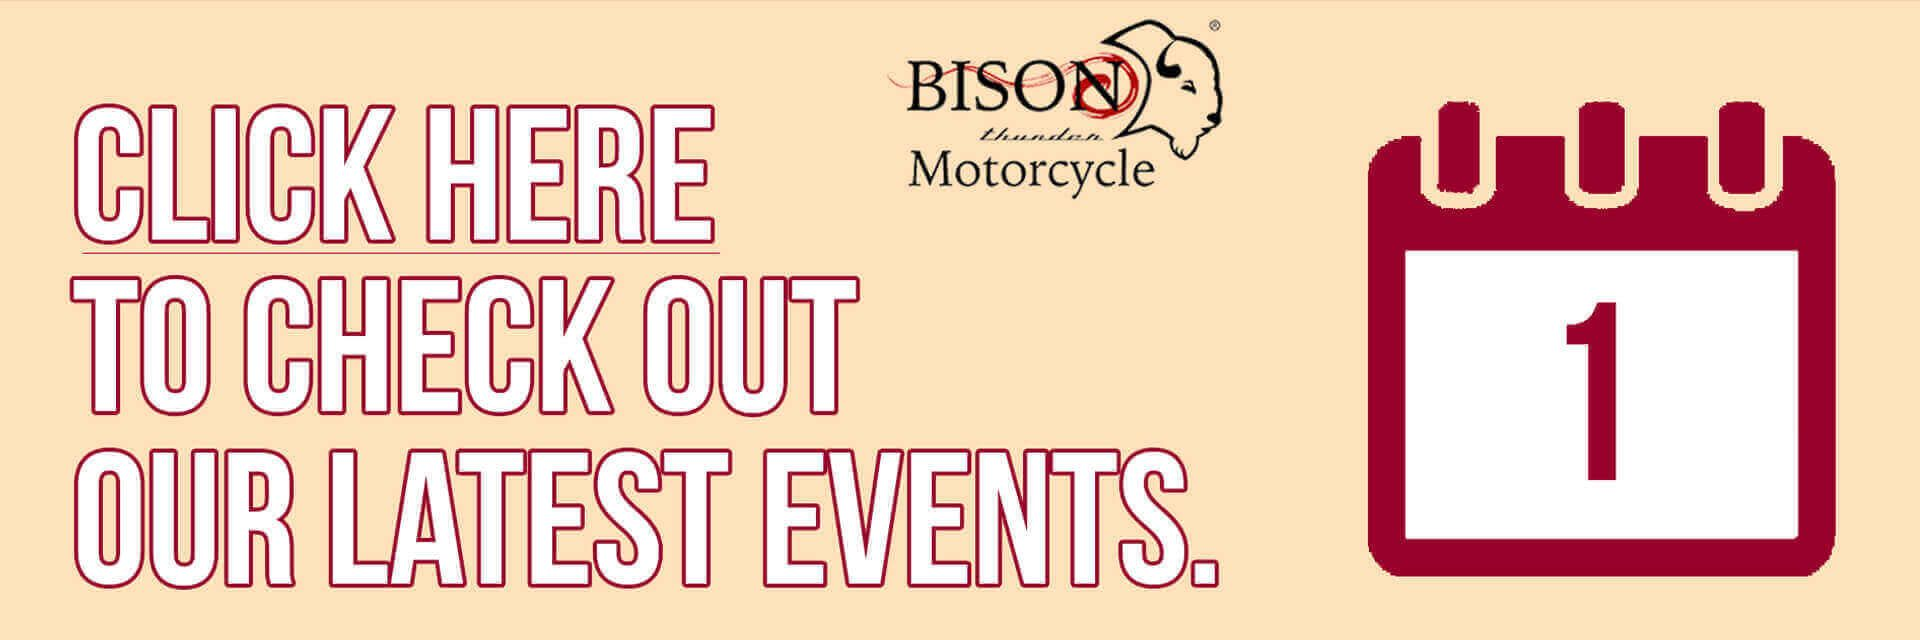 Check out our latest events at Bison Thunder Motorcycle